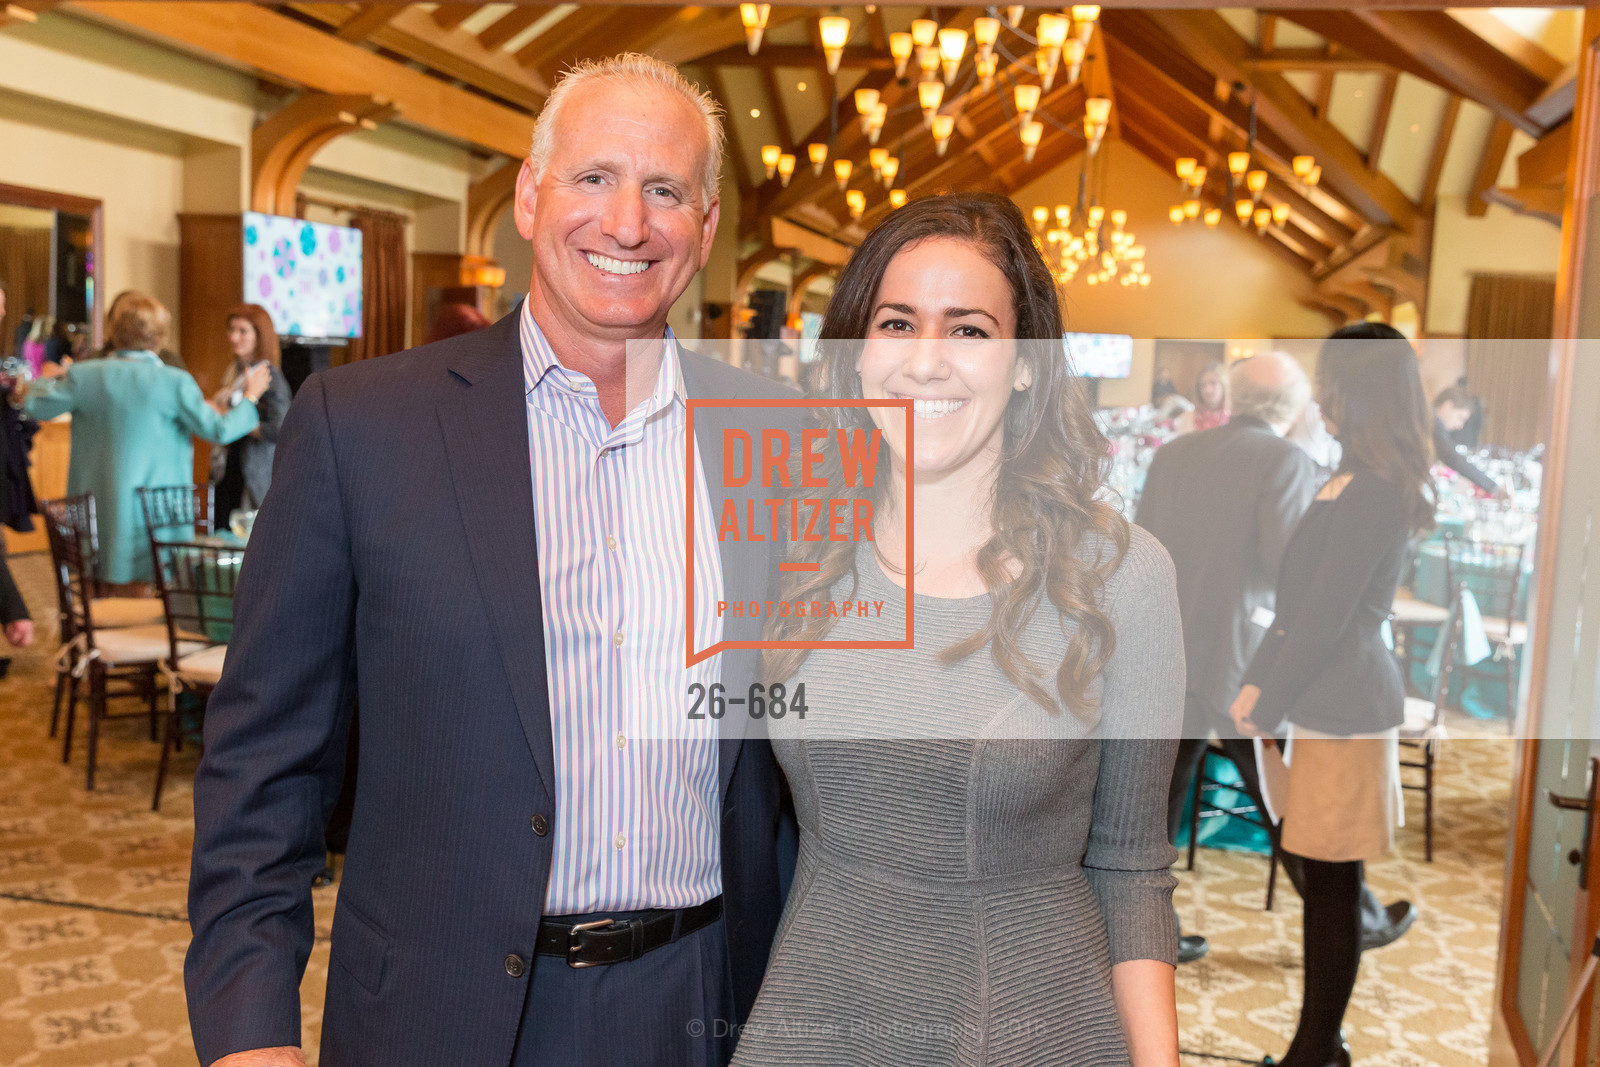 David Weil, Danielle Rivera, Under One Umbrella, Sharon Heights Golf and Country Club, January 13th, 2016,Drew Altizer, Drew Altizer Photography, full-service agency, private events, San Francisco photographer, photographer california